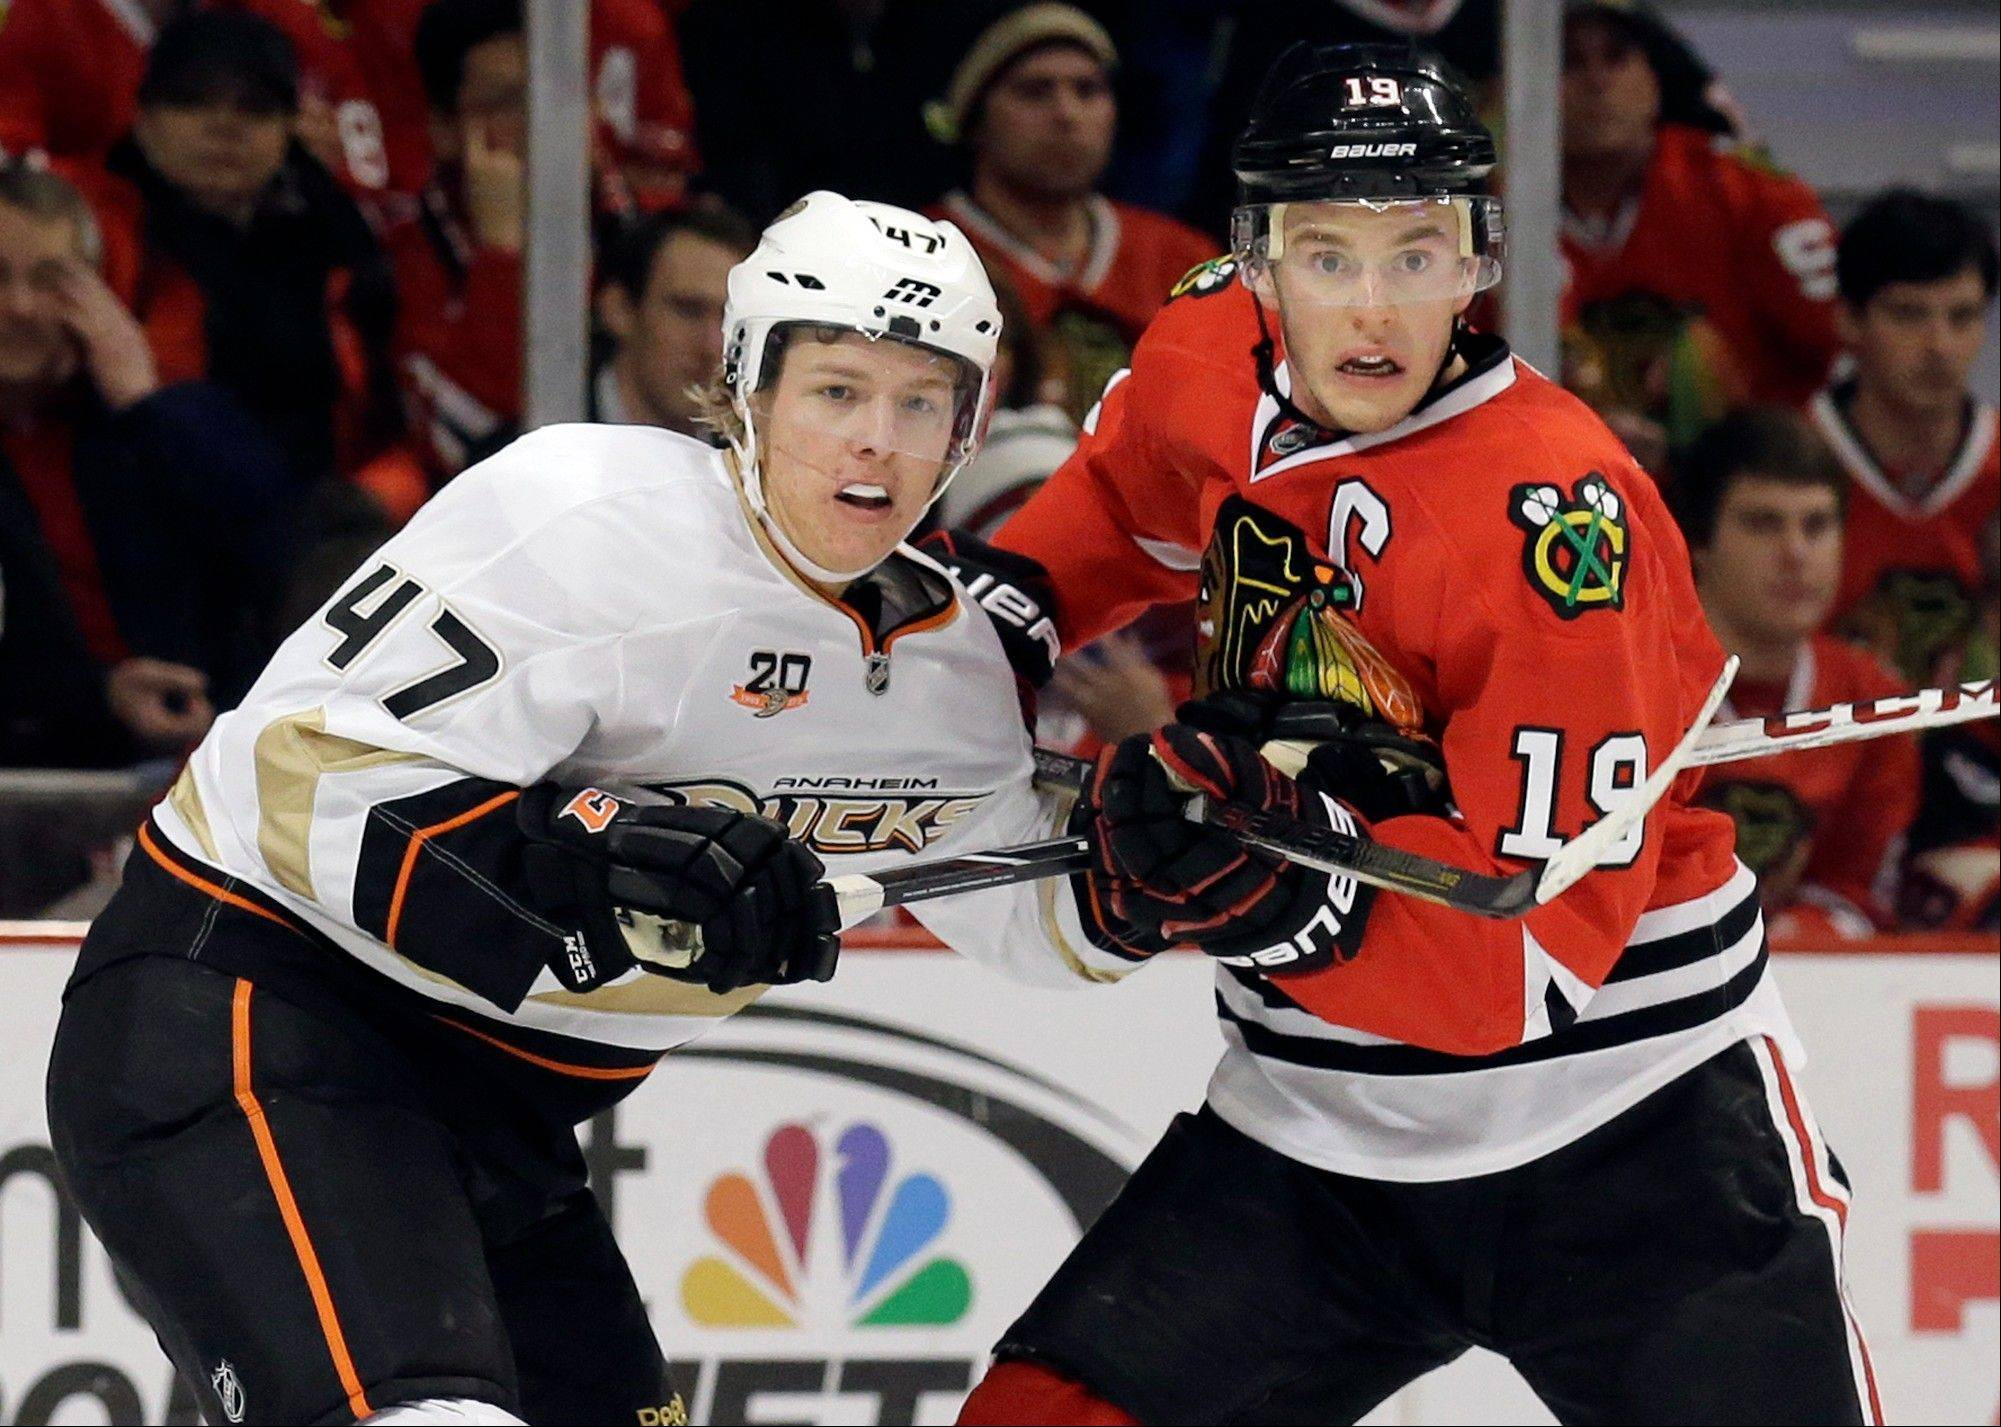 Chicago Blackhawks' Jonathan Toews, right, and Anaheim Ducks' Hampus Lindholm watch the puck during the second period of an NHL hockey game in Chicago, Friday, Jan. 17, 2014. (AP Photo/Nam Y. Huh)